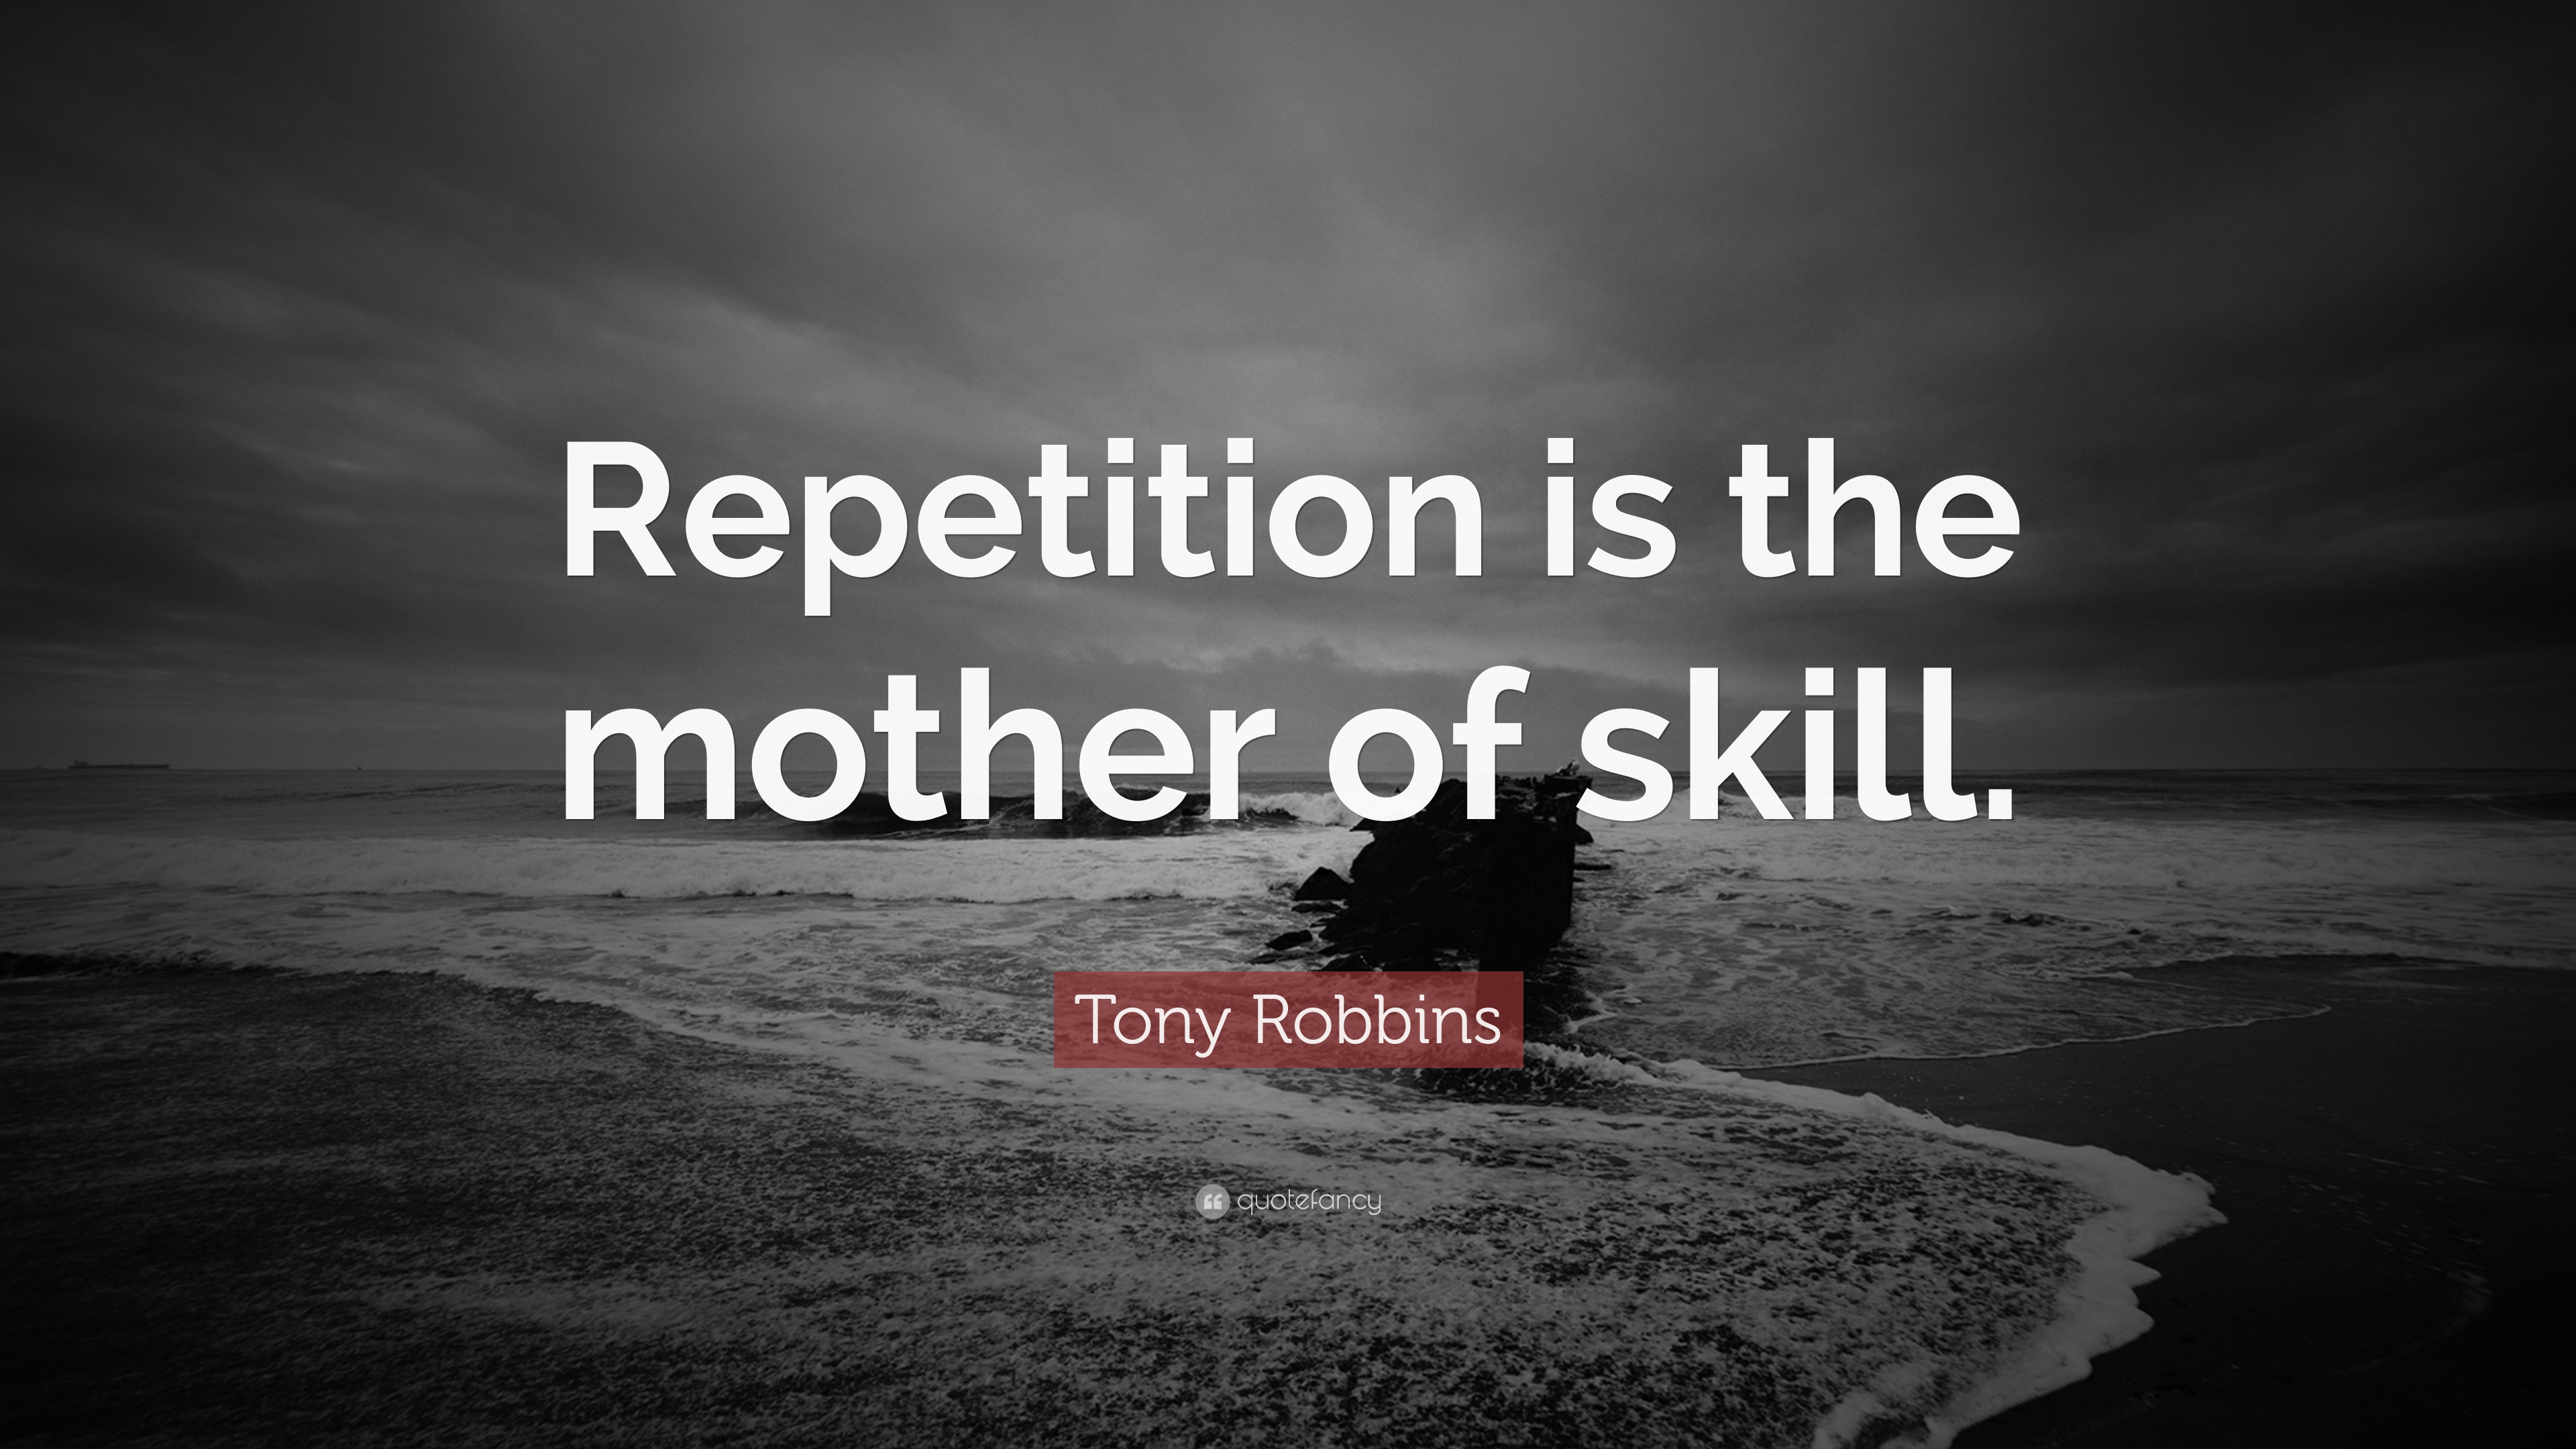 Tony Robbins Quotes | Tony Robbins Quote Repetition Is The Mother Of Skill 12